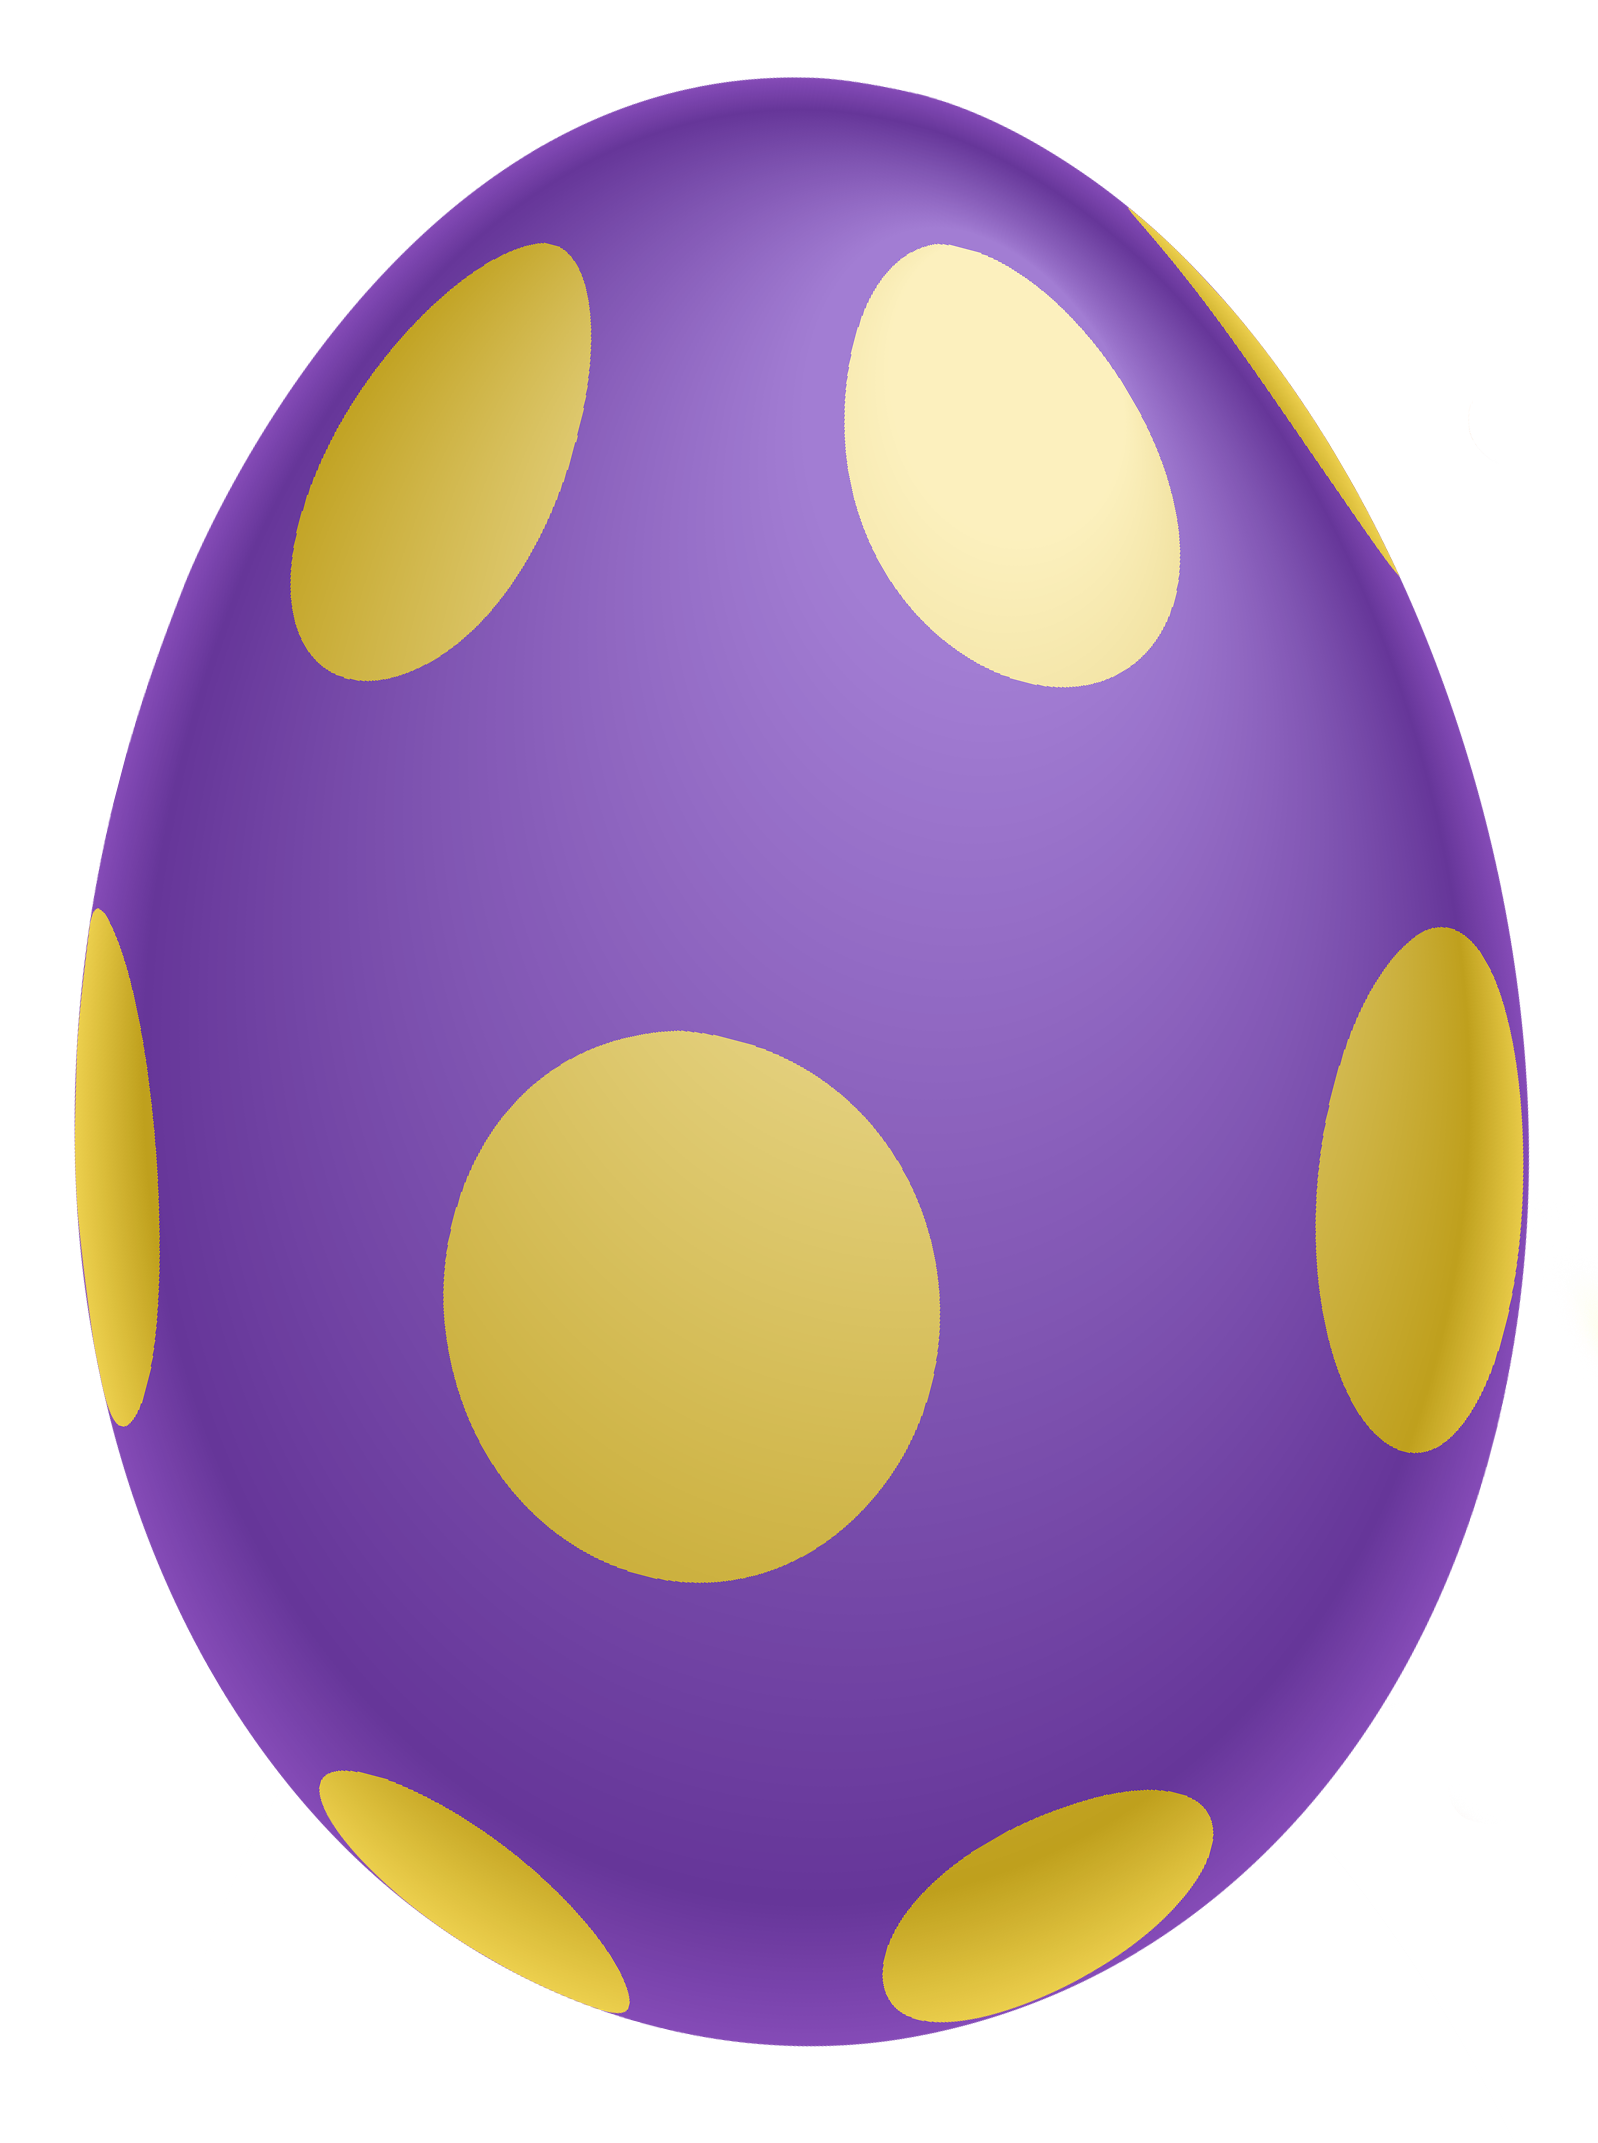 Purple Dotted Easter Egg PNG Clipairt Picture.